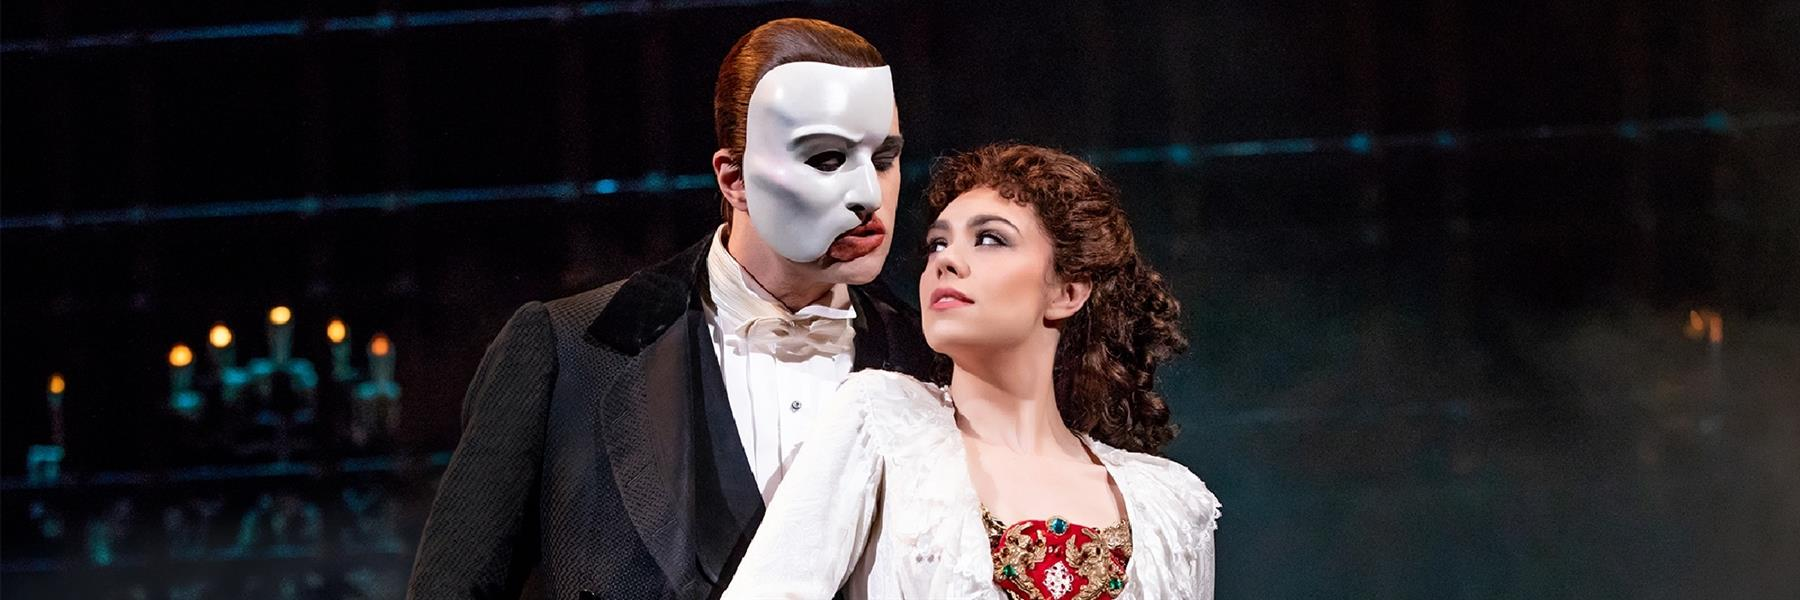 The Phantom of the Opera in New York, New York